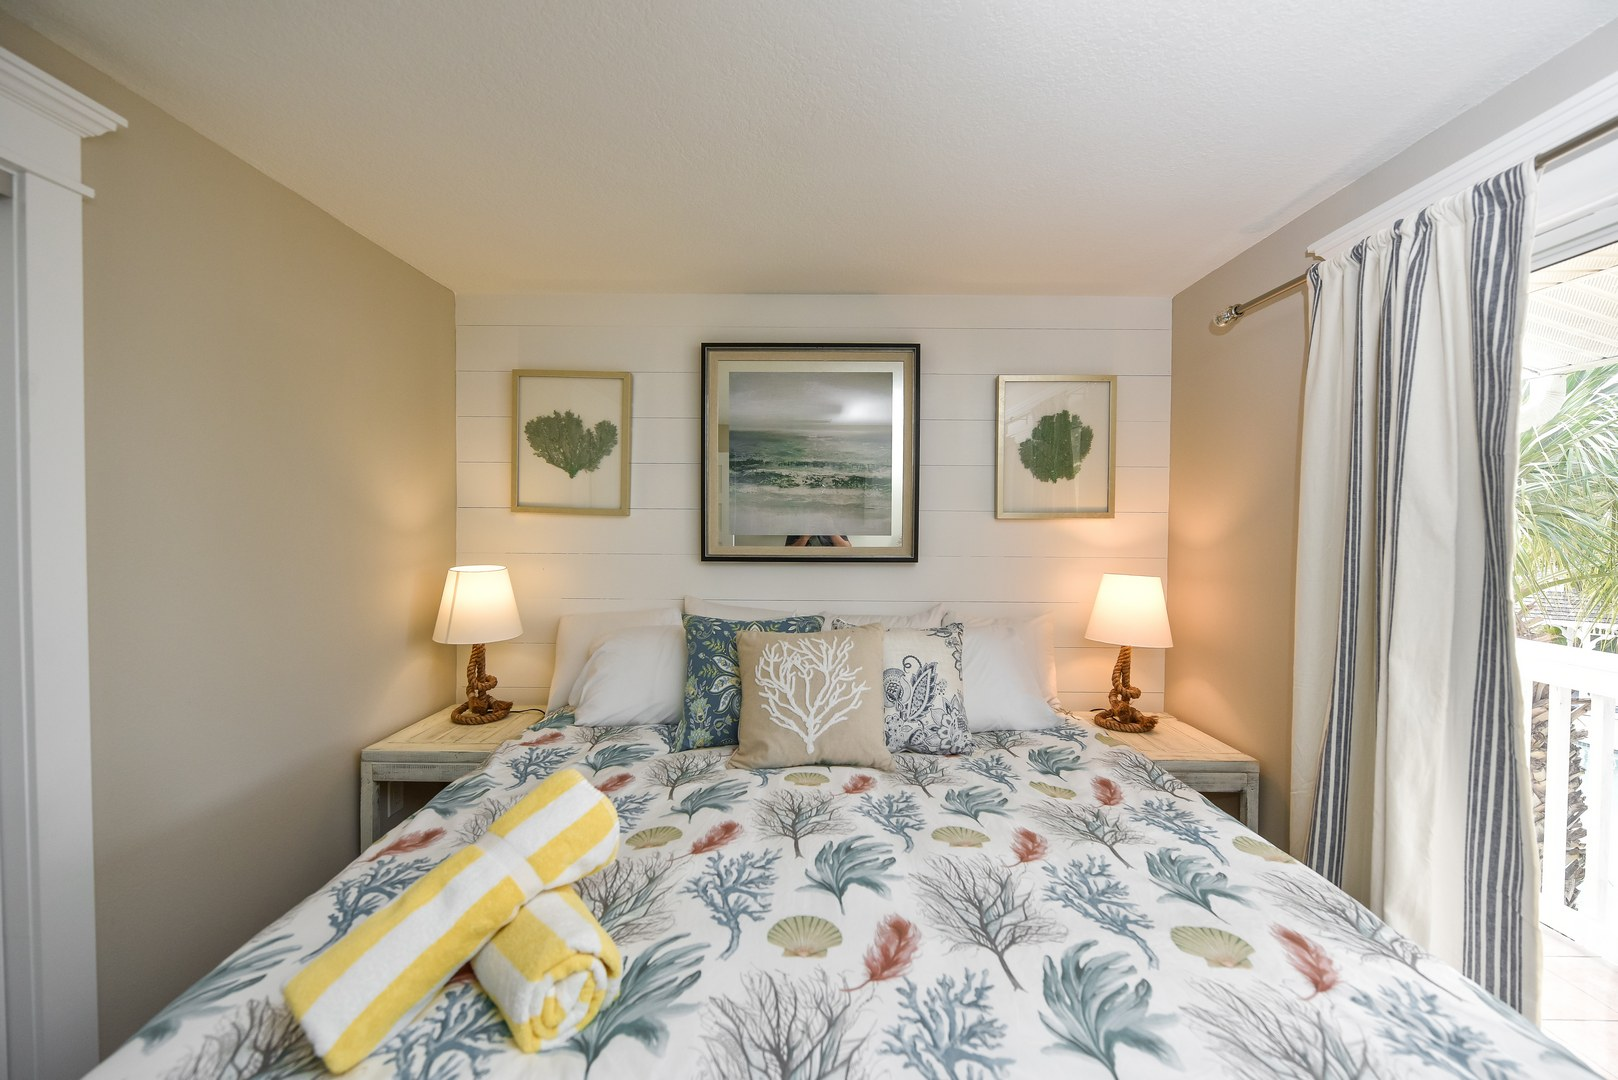 Upgraded linens and mattress ensure comfortable rest